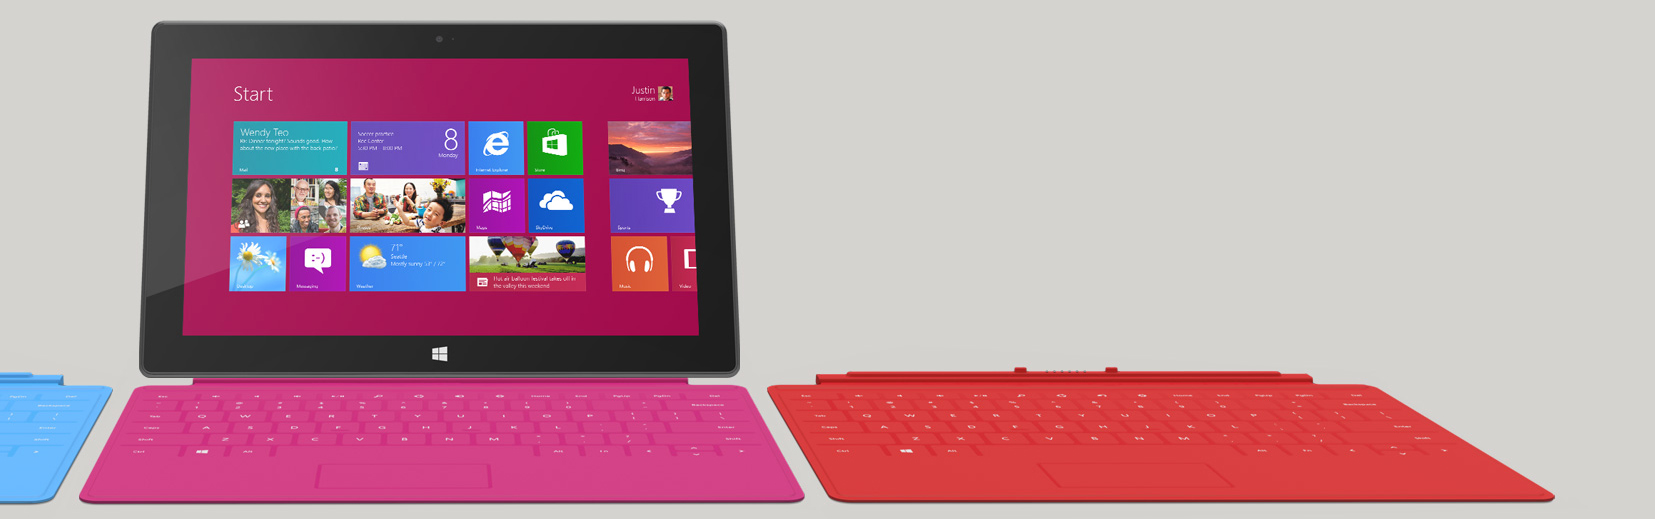 Microsoft's first branded tablet Surfaces, but you can't buy it in Singapore yet